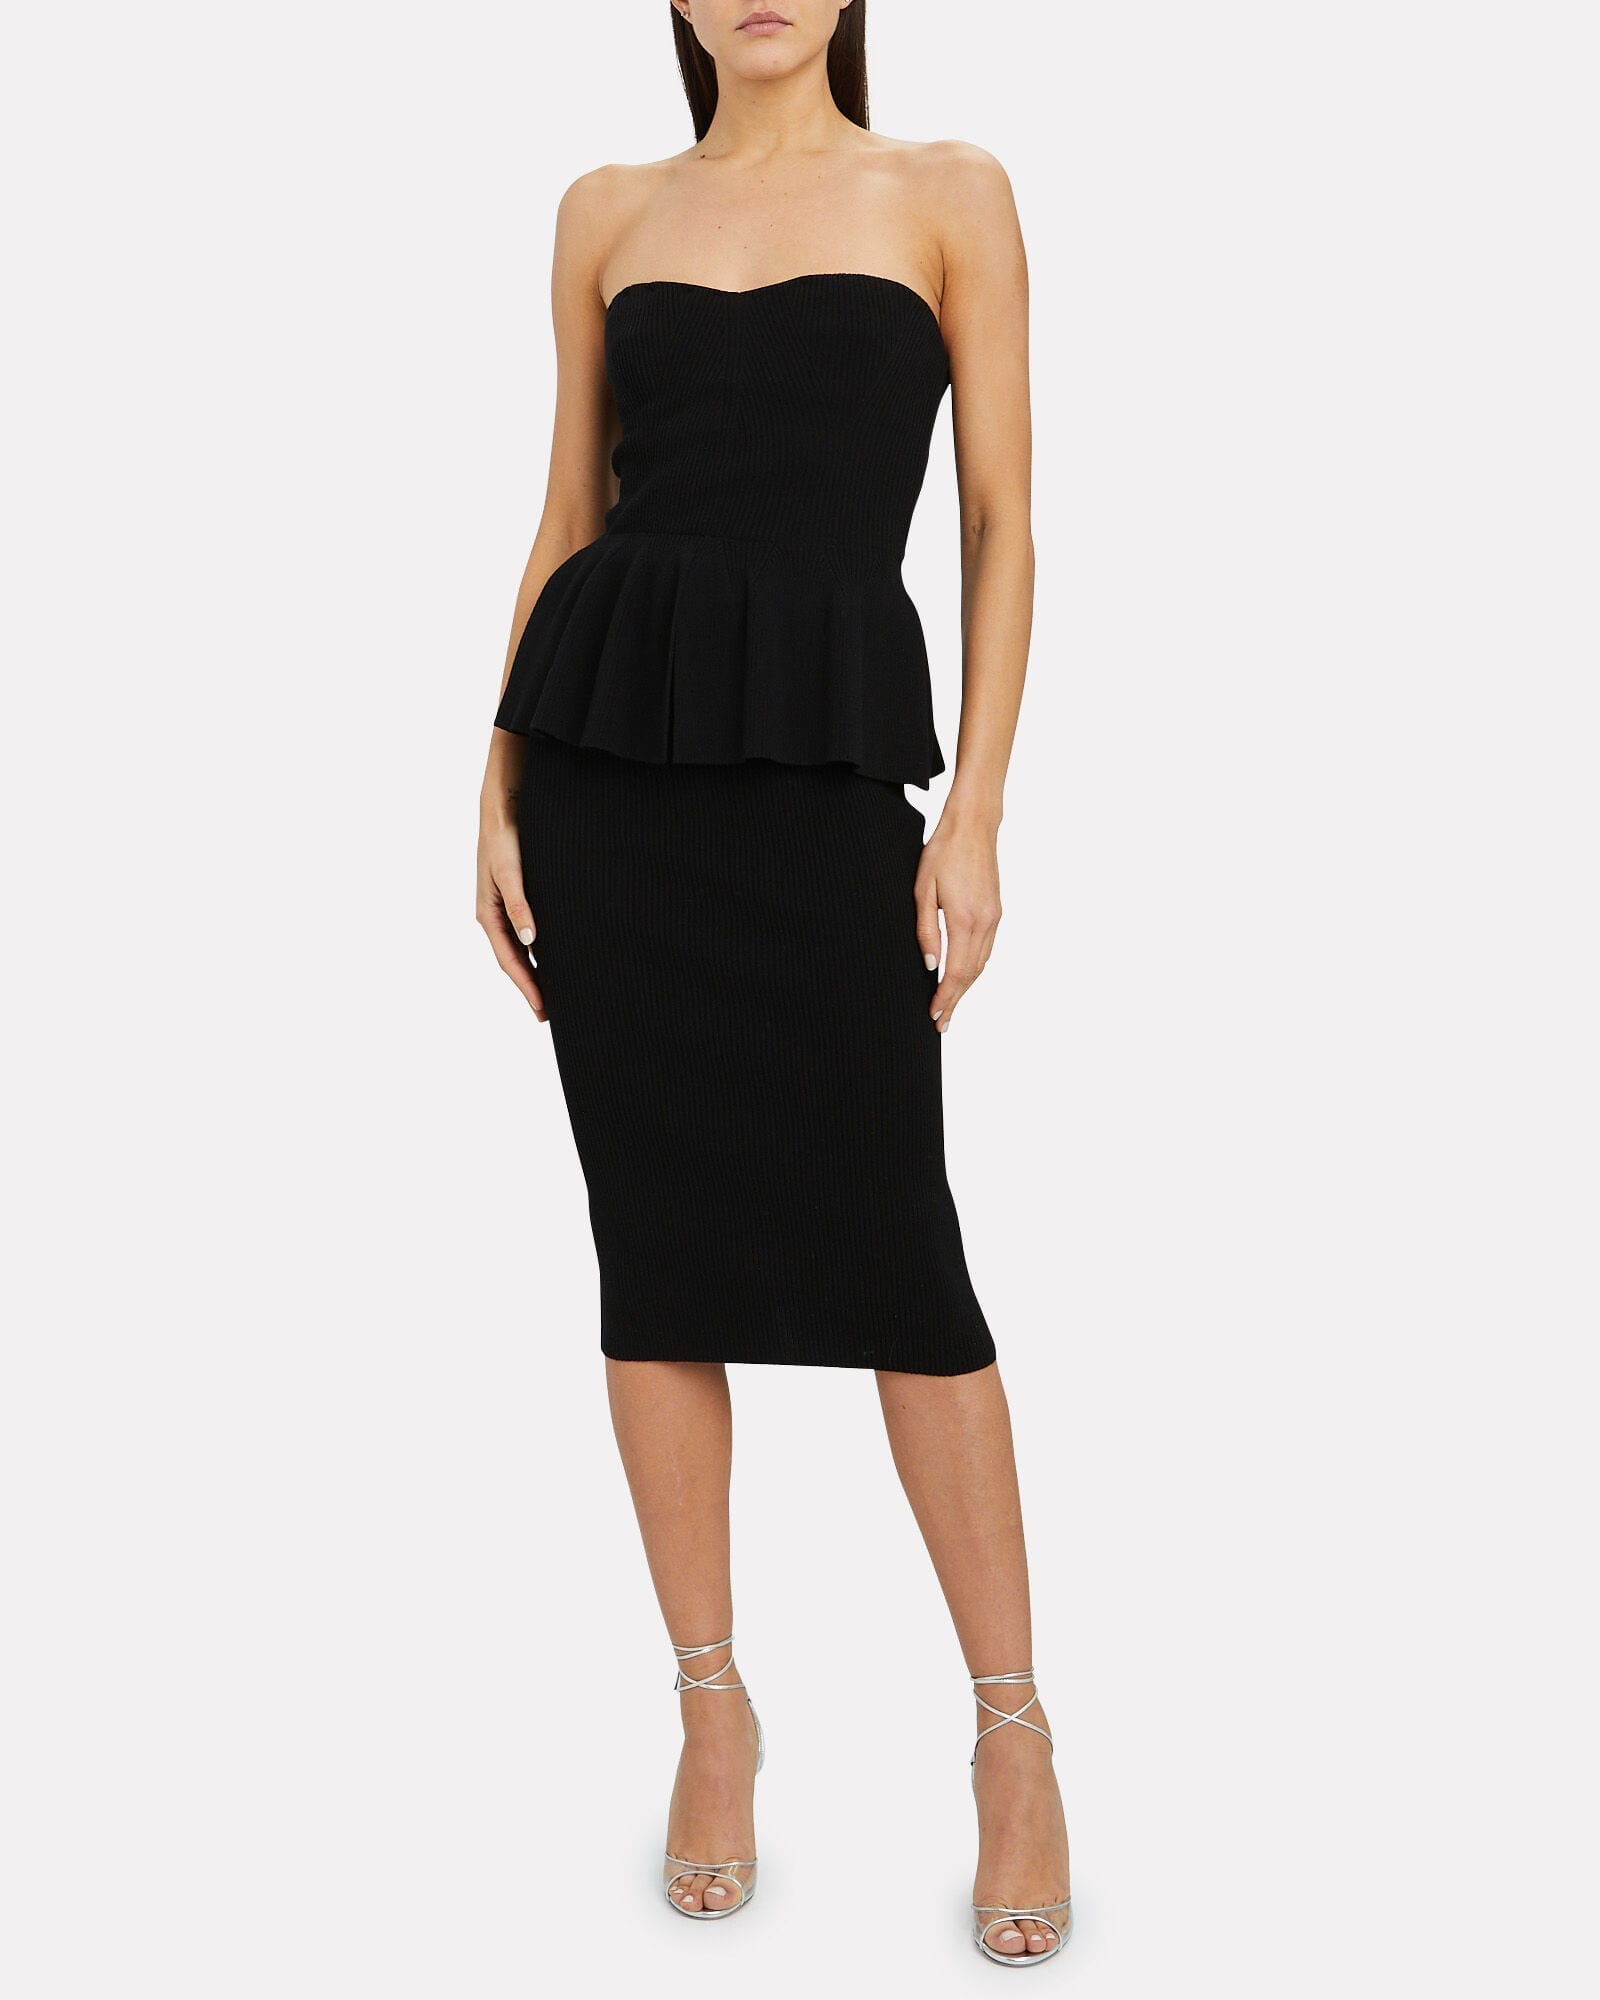 PHILOSOPHY DI LORENZO SERAFINI Strapless Peplum Knit Dress